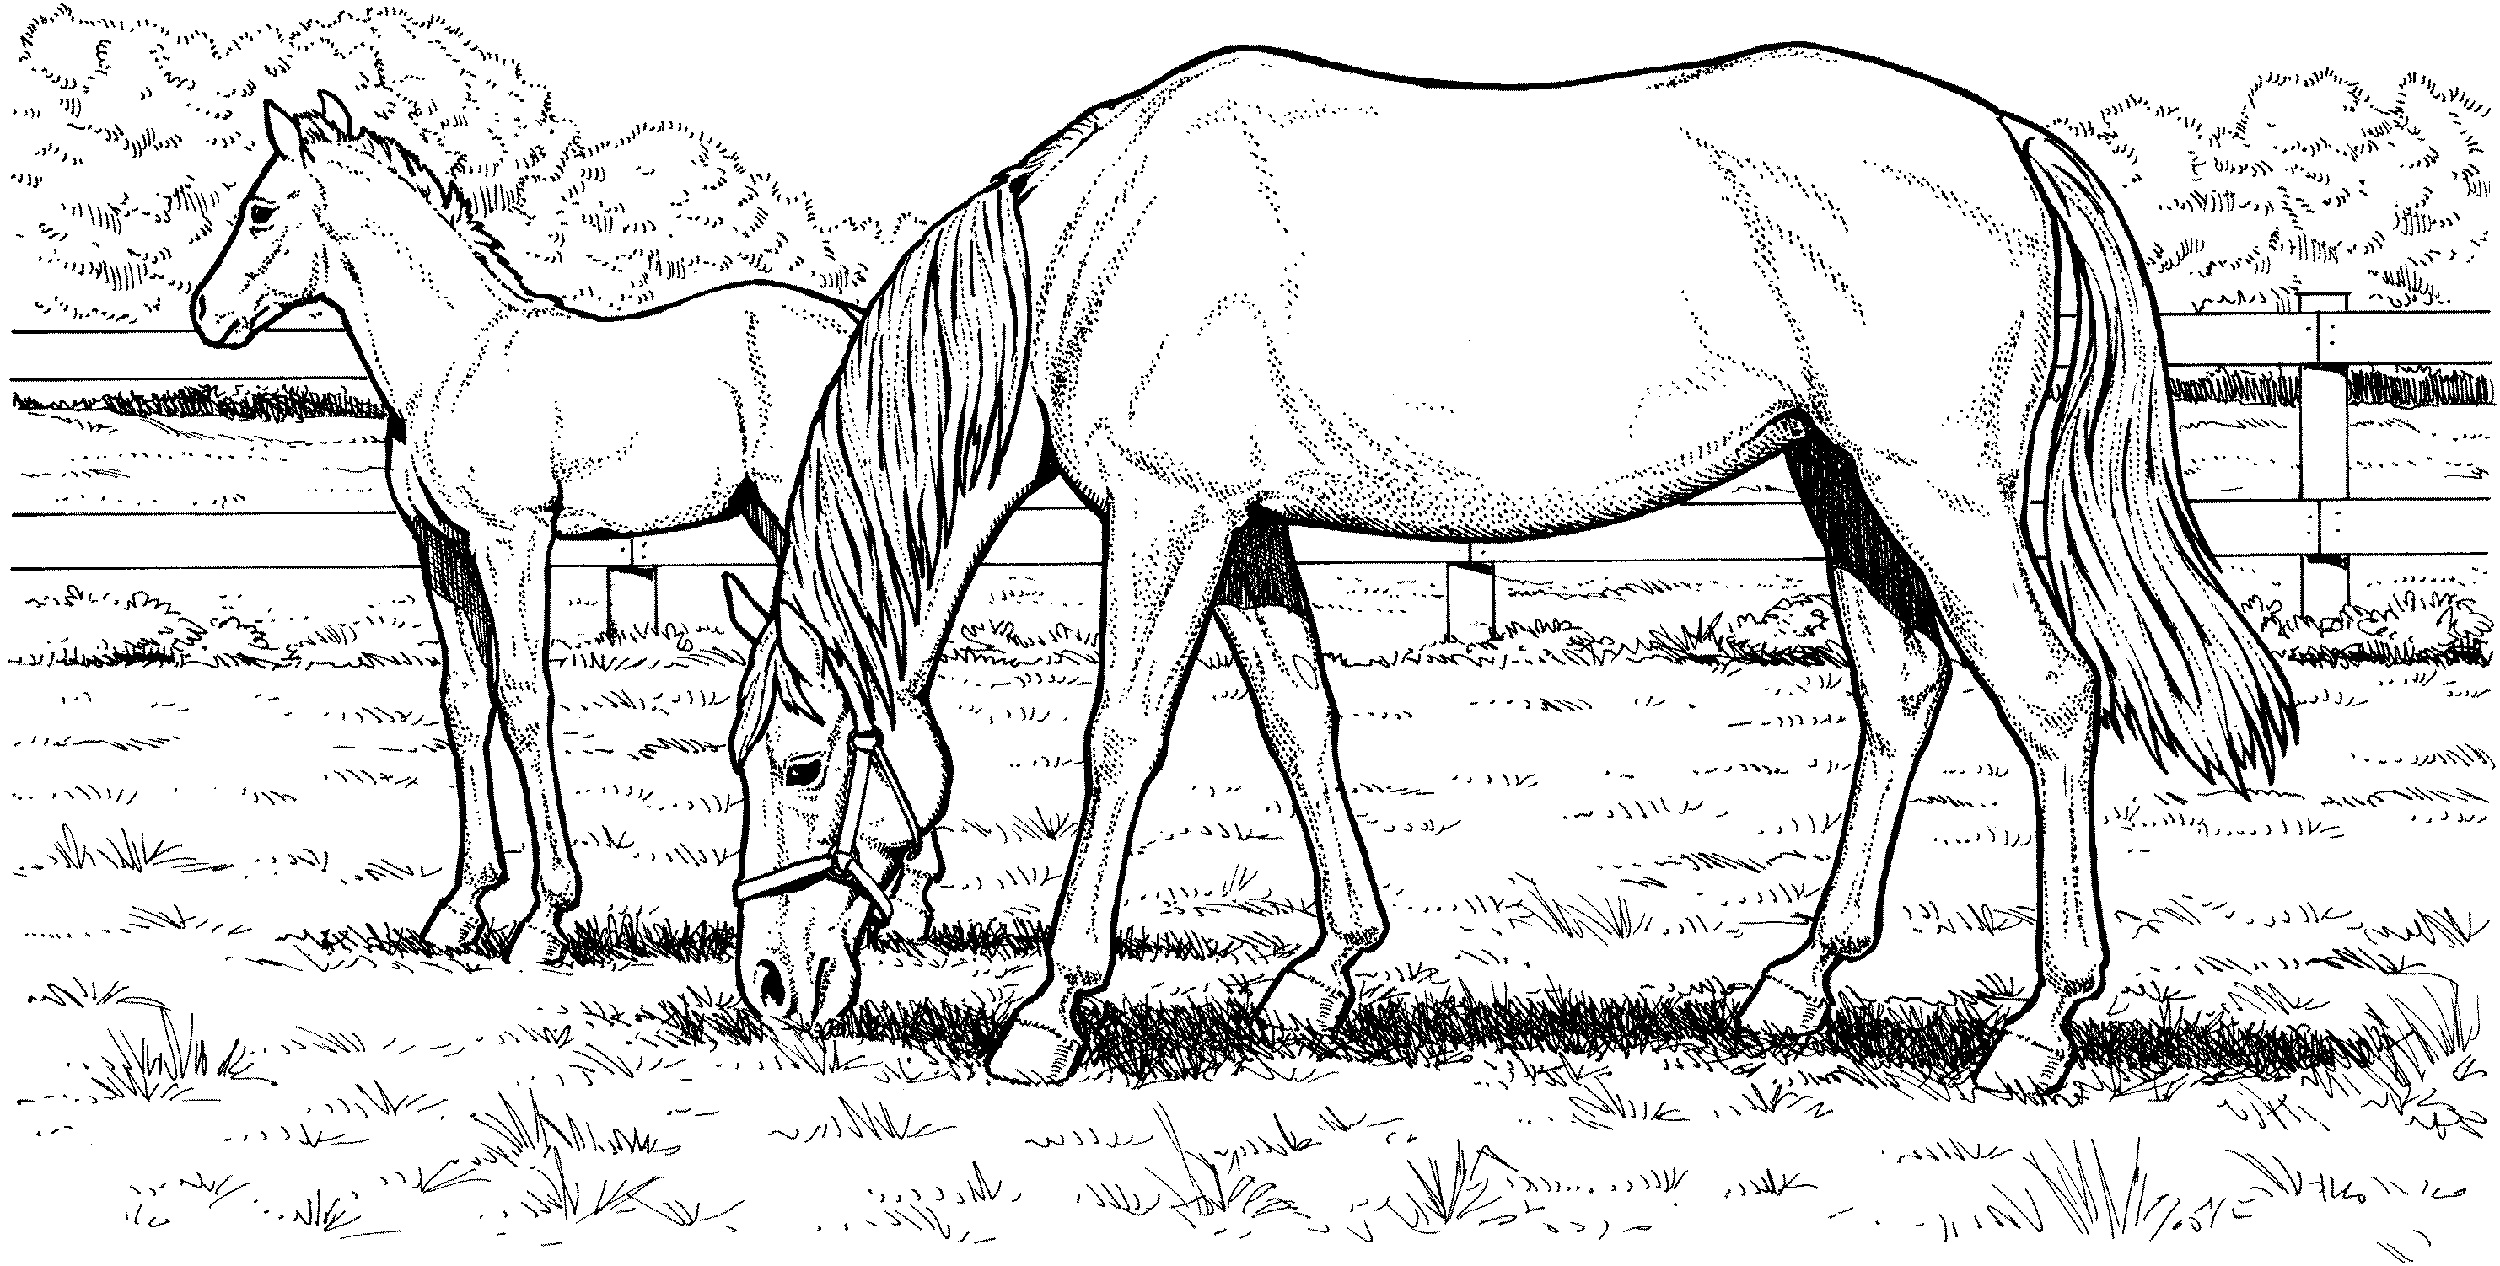 pictures of horses to colour in horse coloring pages for kids coloring pages for kids of horses in to colour pictures